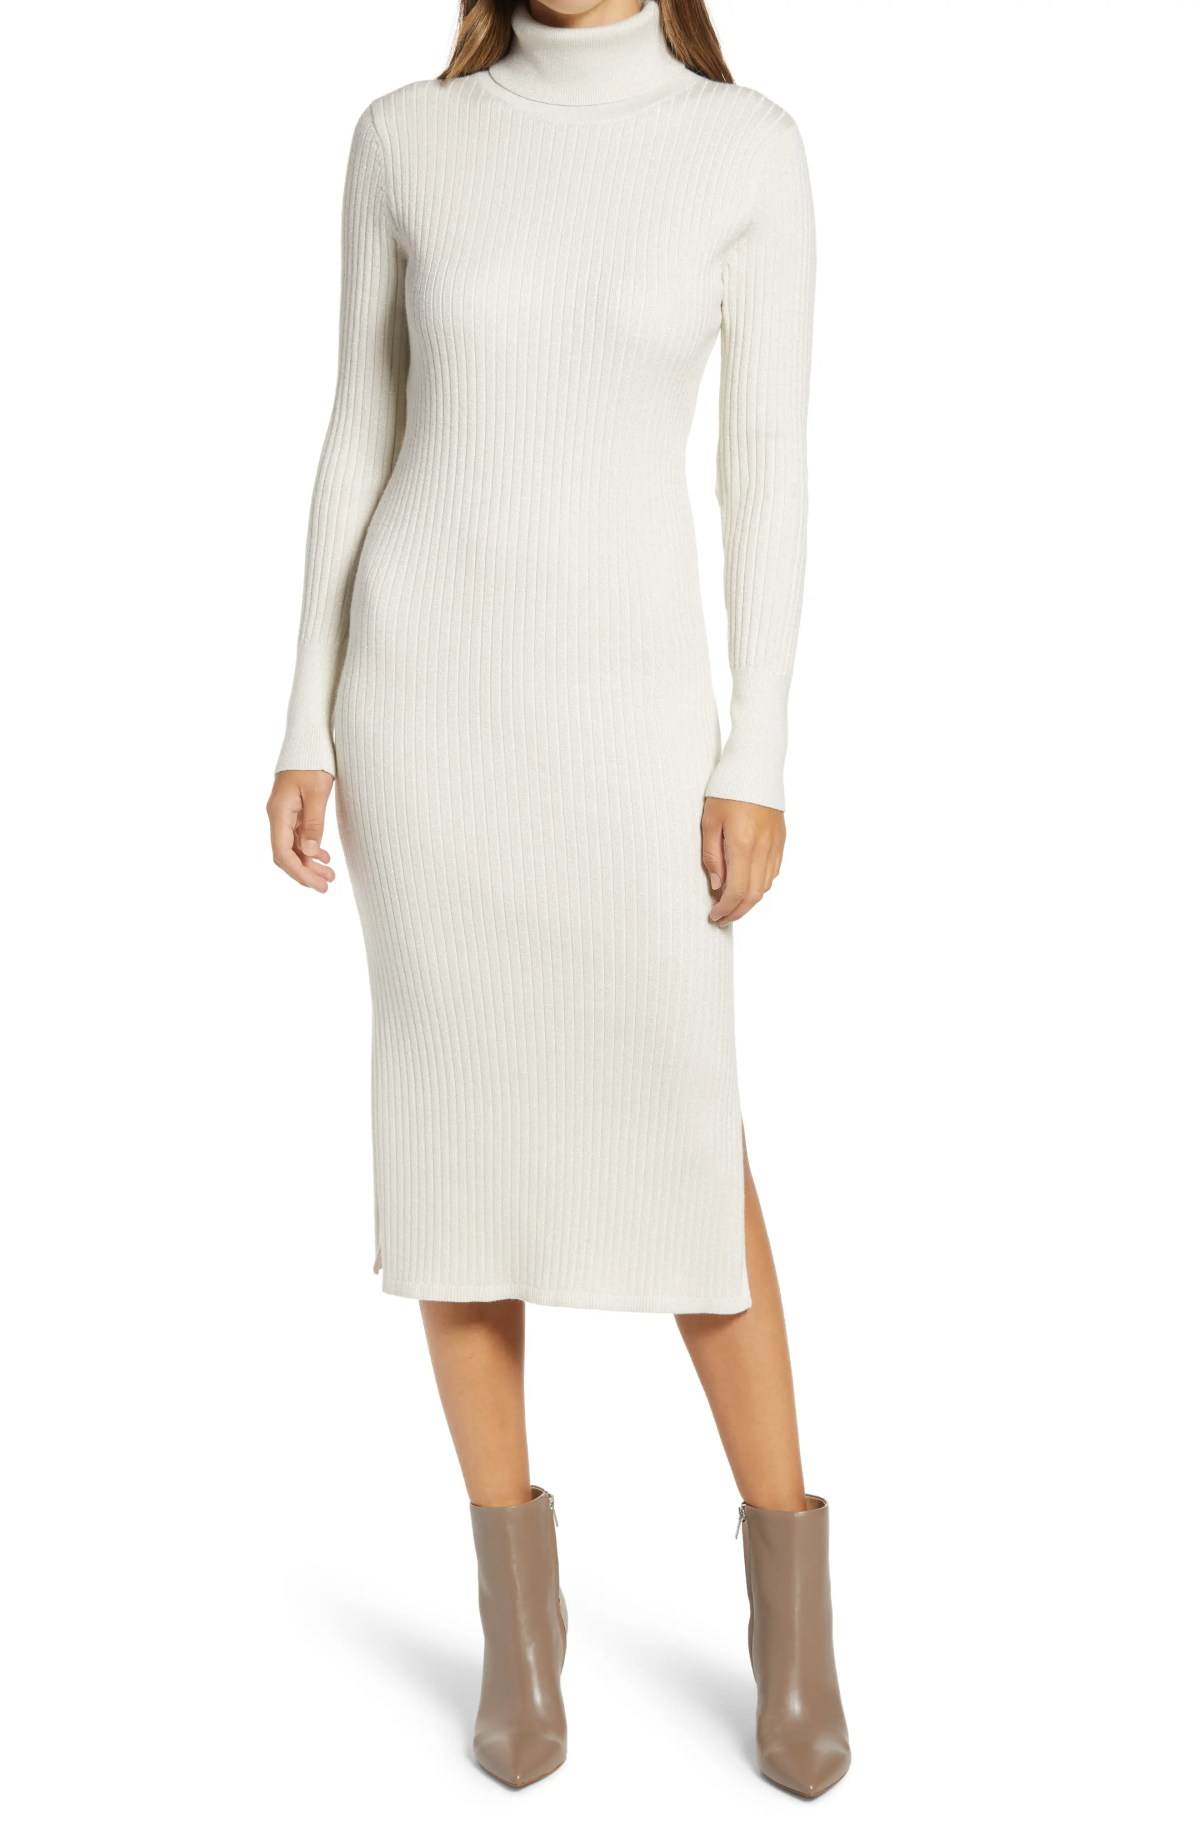 RACHEL PARCELL Long Sleeve Ribbed Turtleneck Sweater Dress, Main, color, IVORY